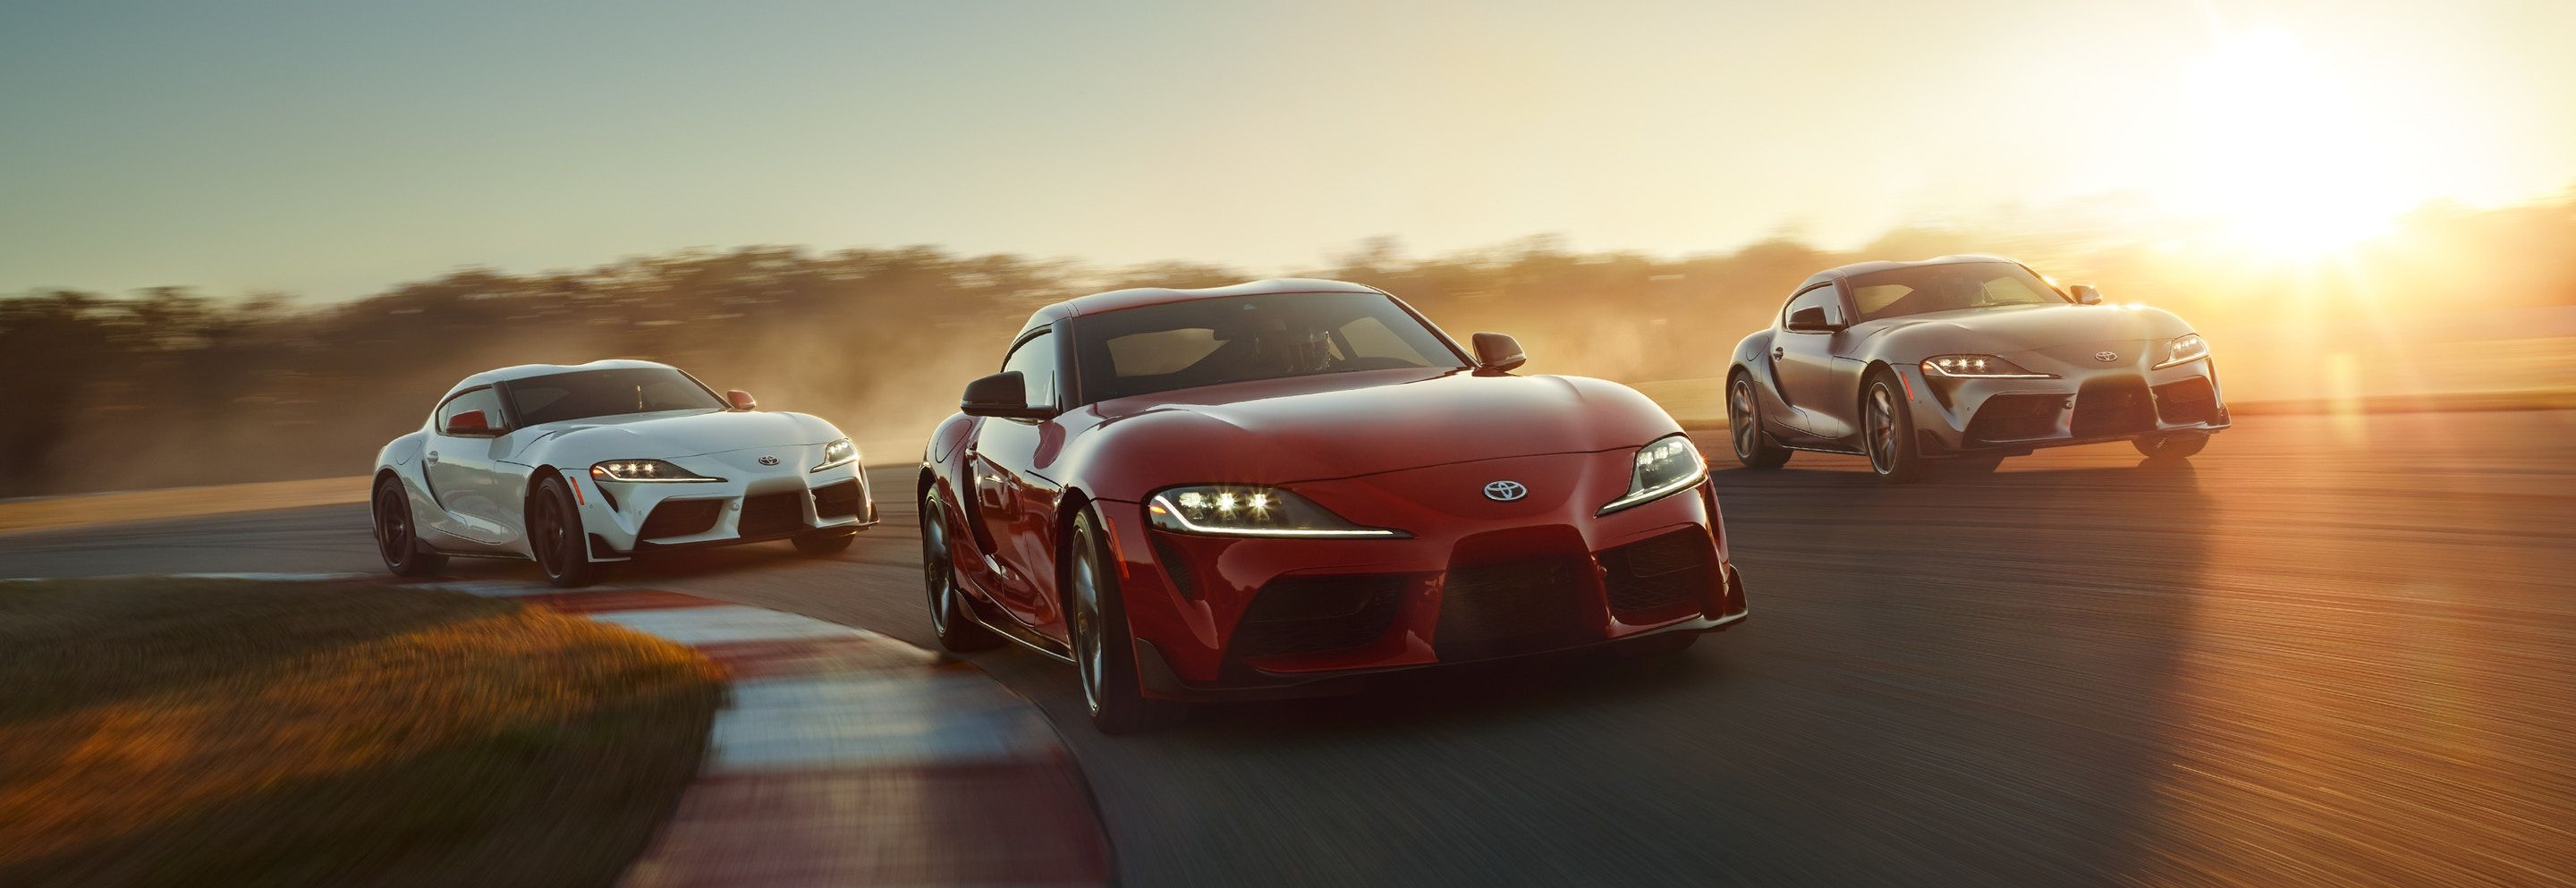 2020 Toyota Supra for Sale near Overland Park, KS, 66213